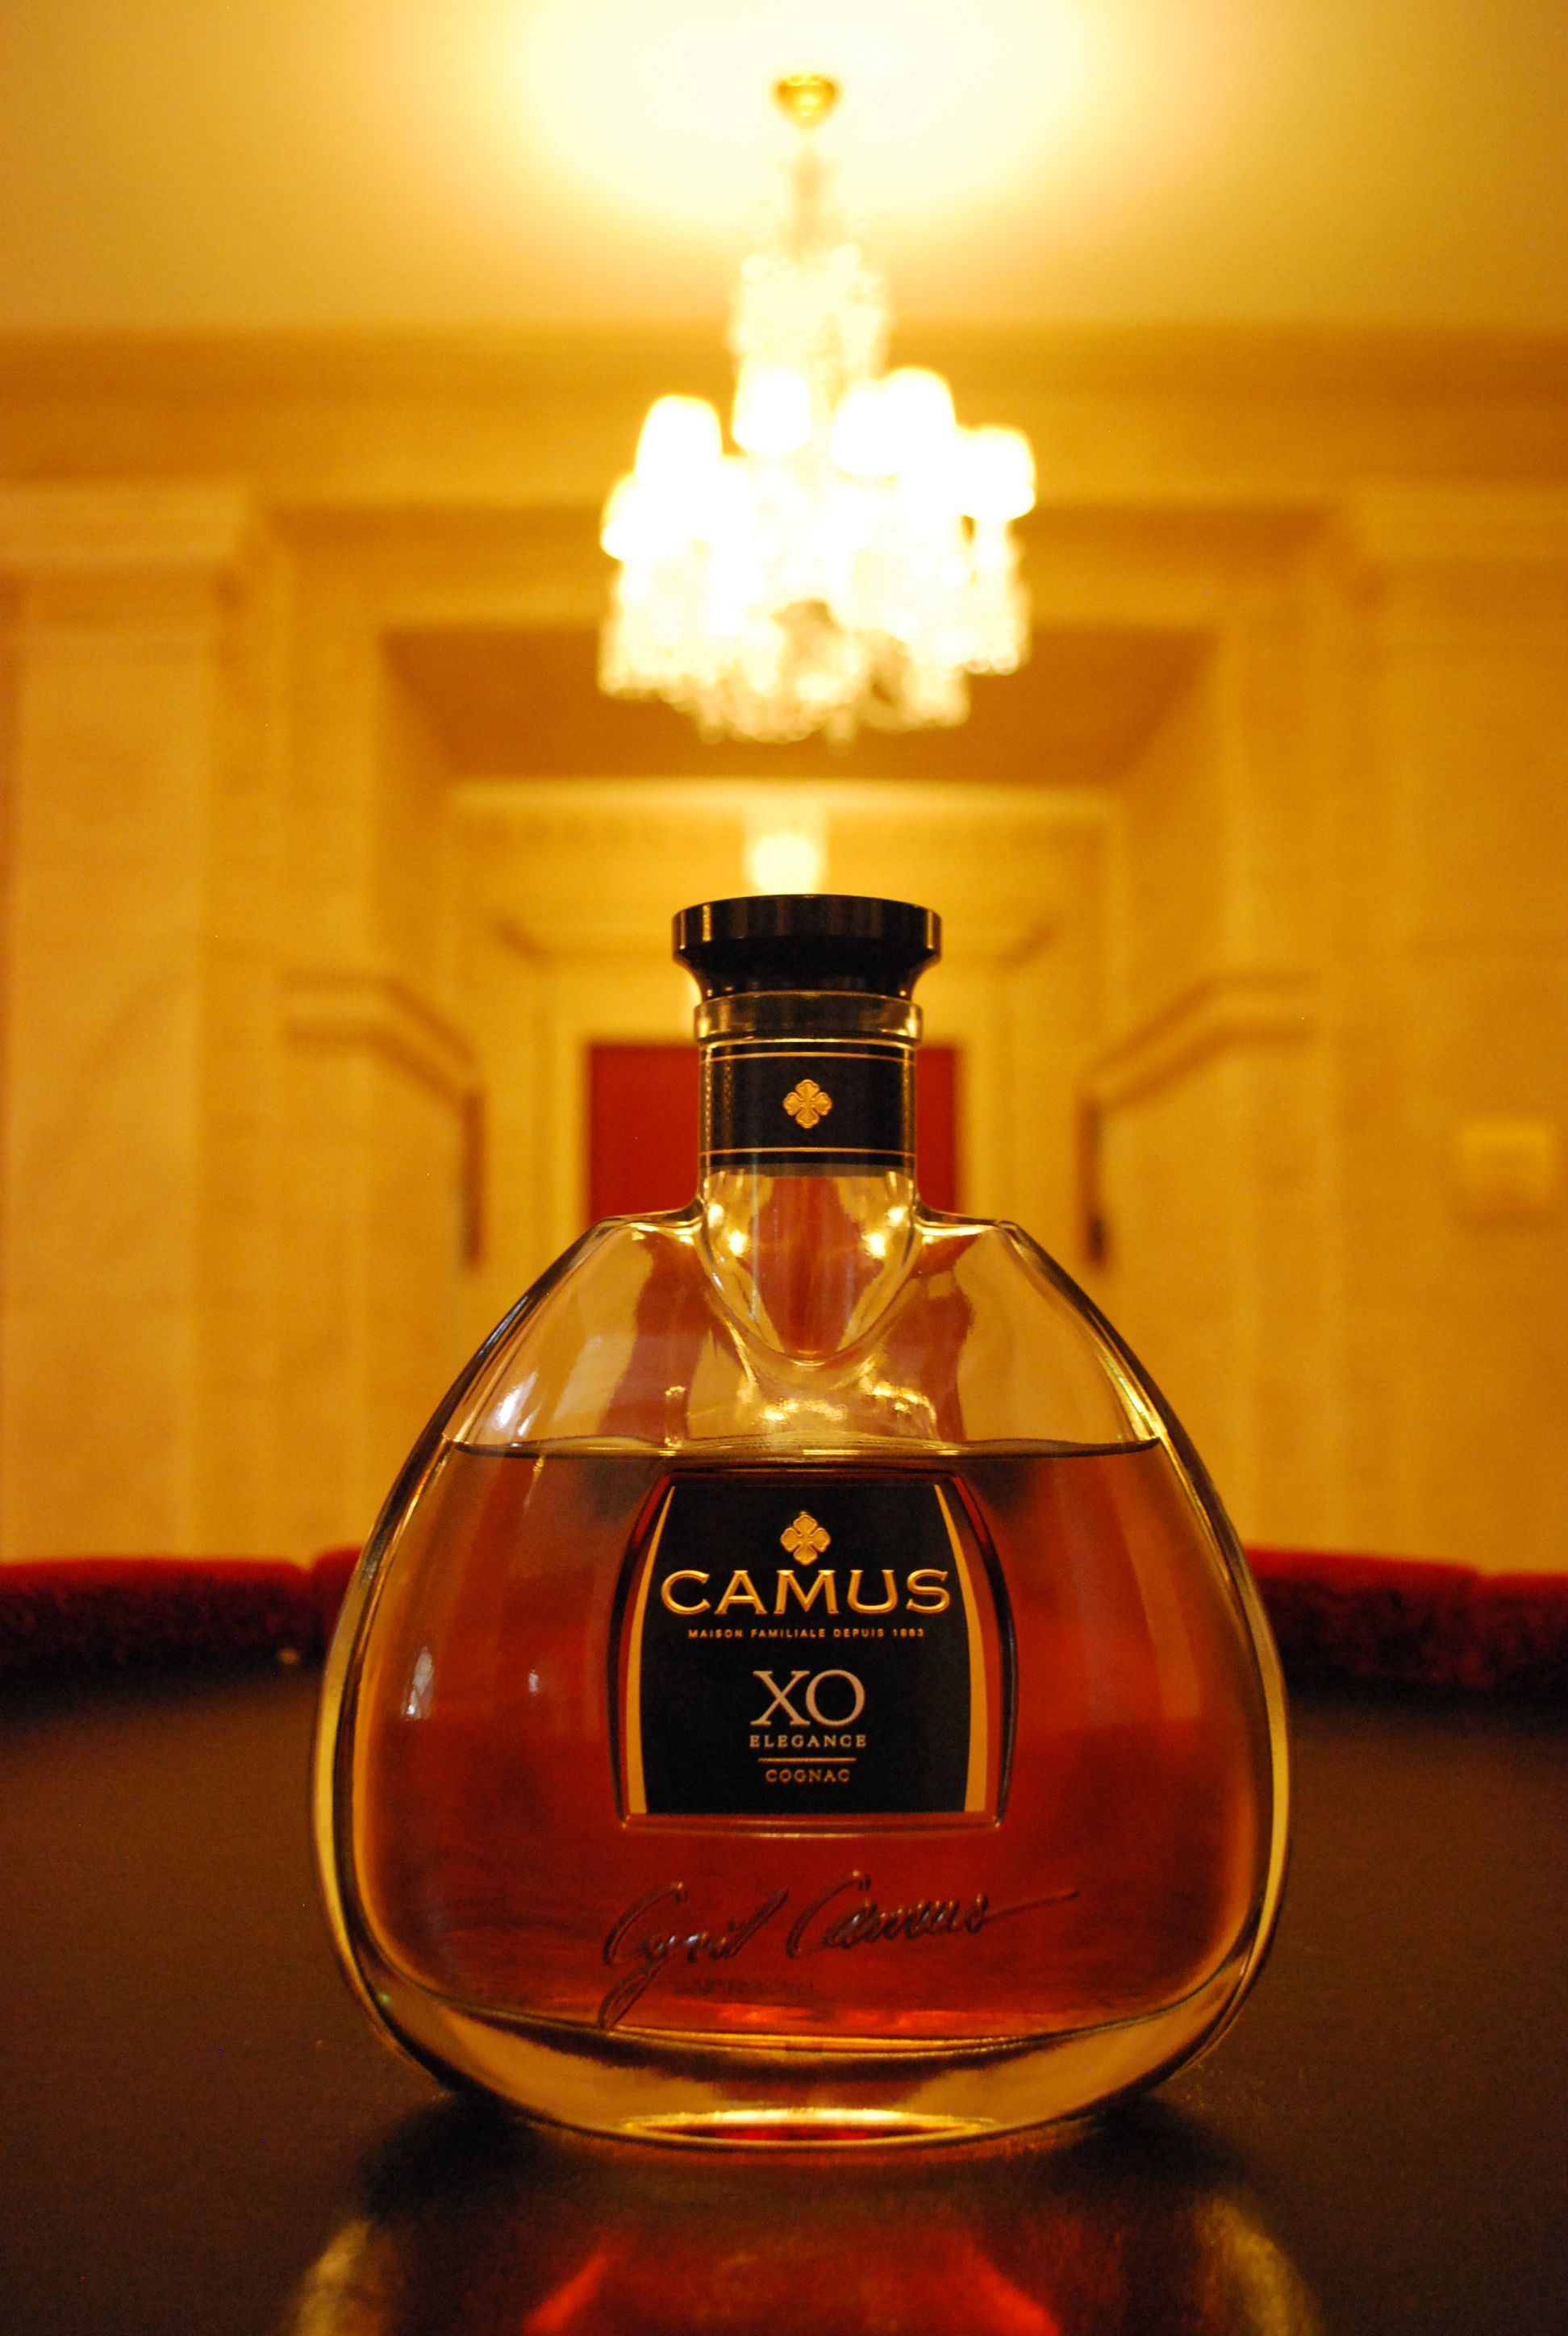 Ready for a classy reception. Would you like to join us ? #cognac #alcool #drink